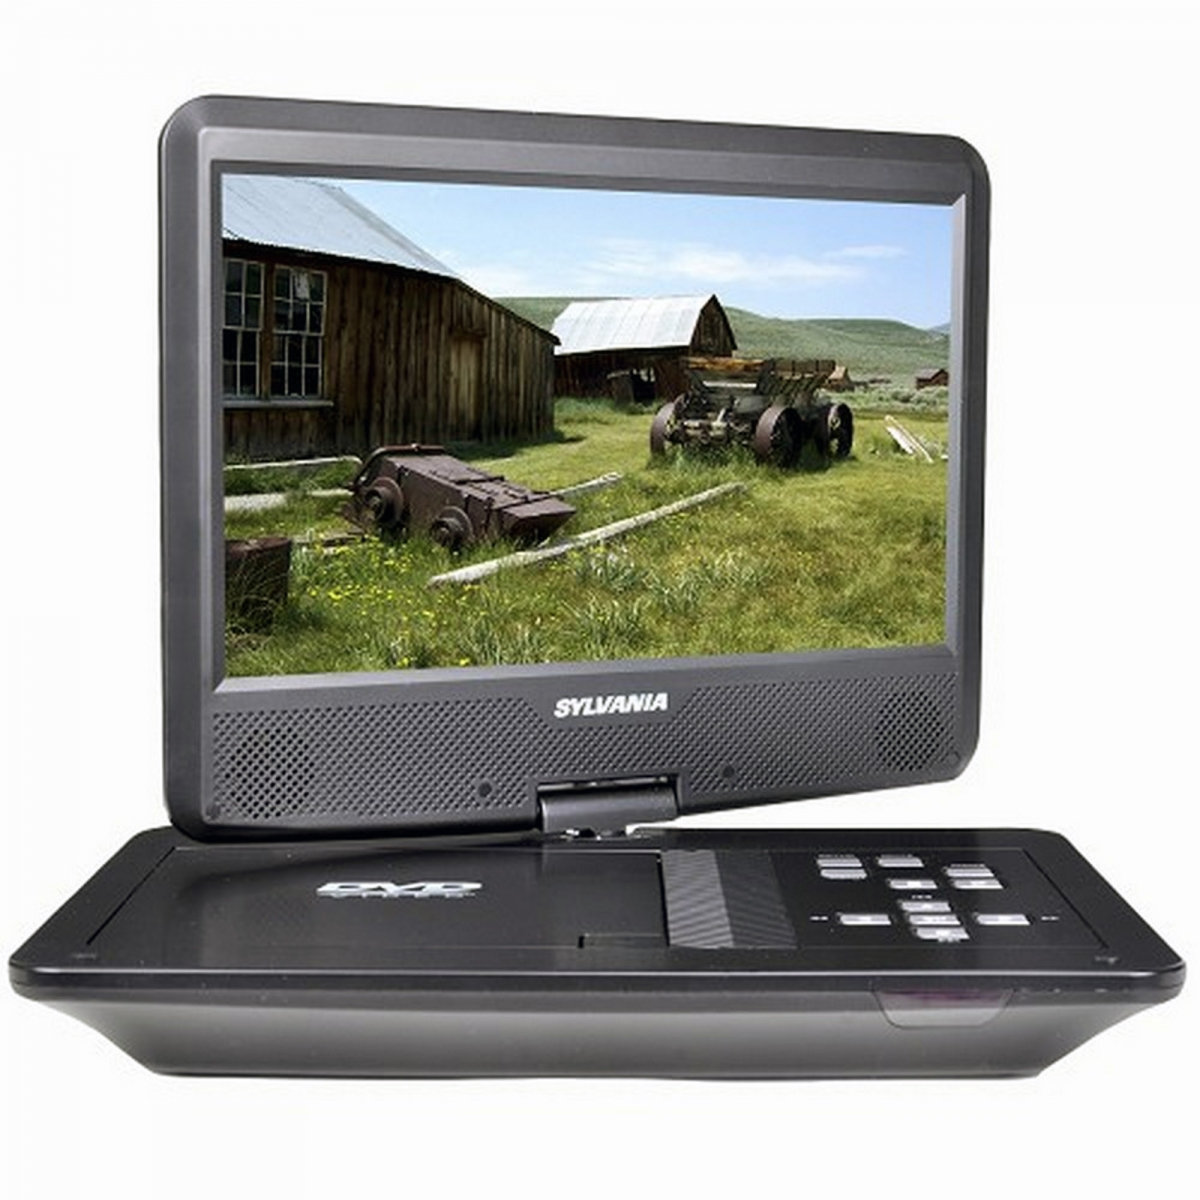 Sylvania Portable DVD Player with 5-Hour Battery PartNumber: 05735868000P